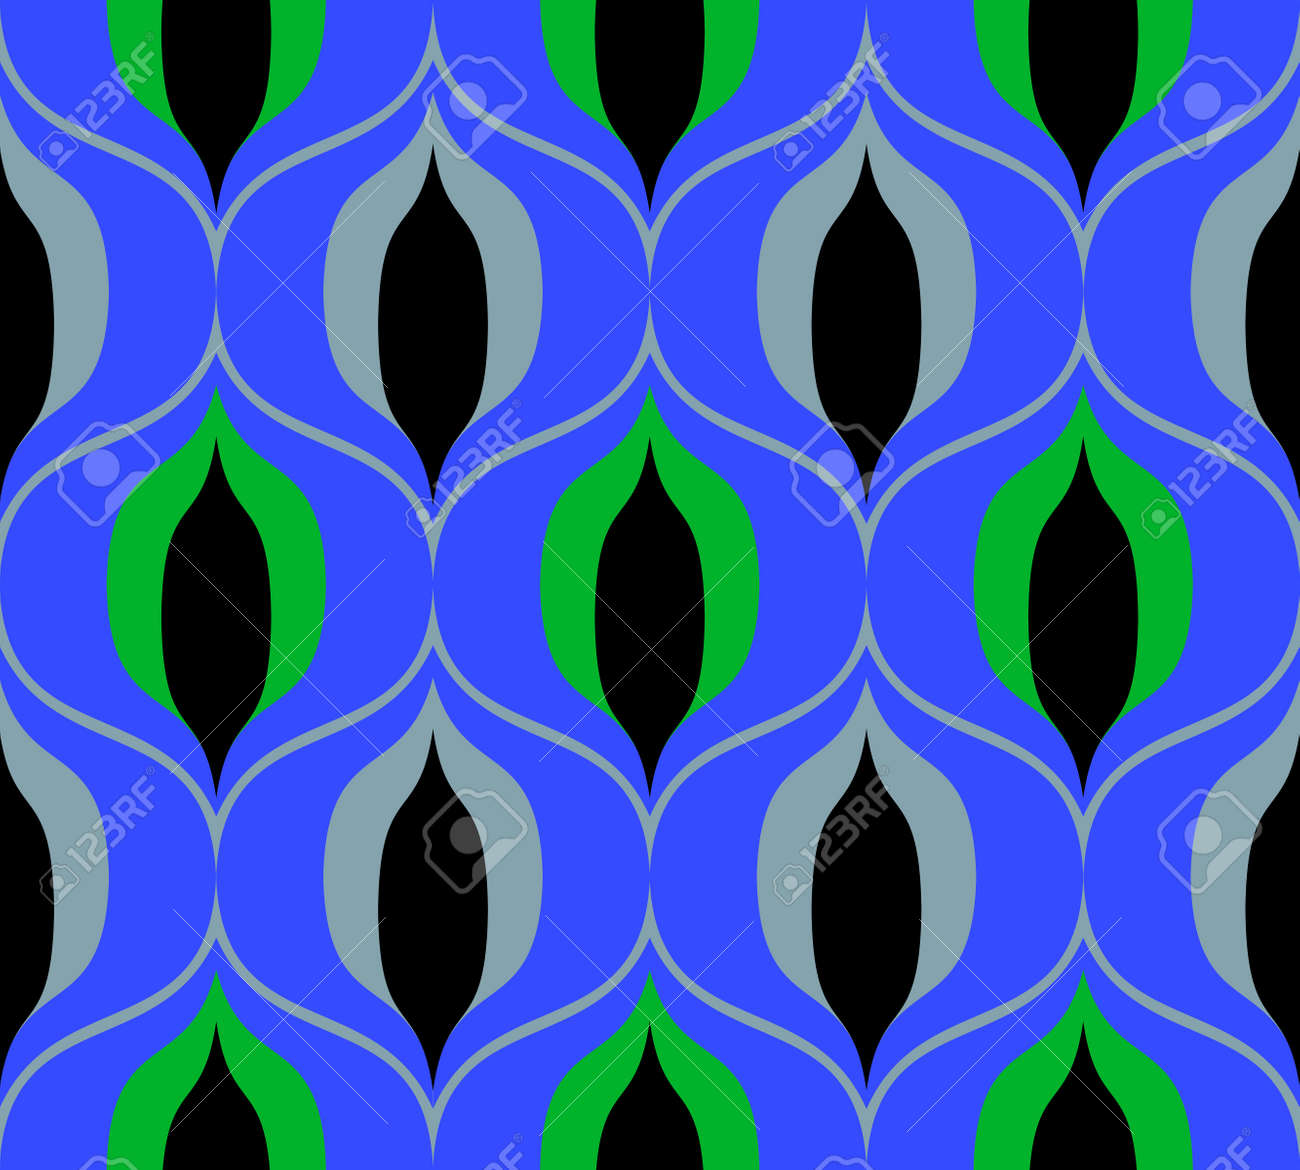 Seamless retro pattern in the style of the sixties. Art deco vintage wallpaper or fabric. - 125396148